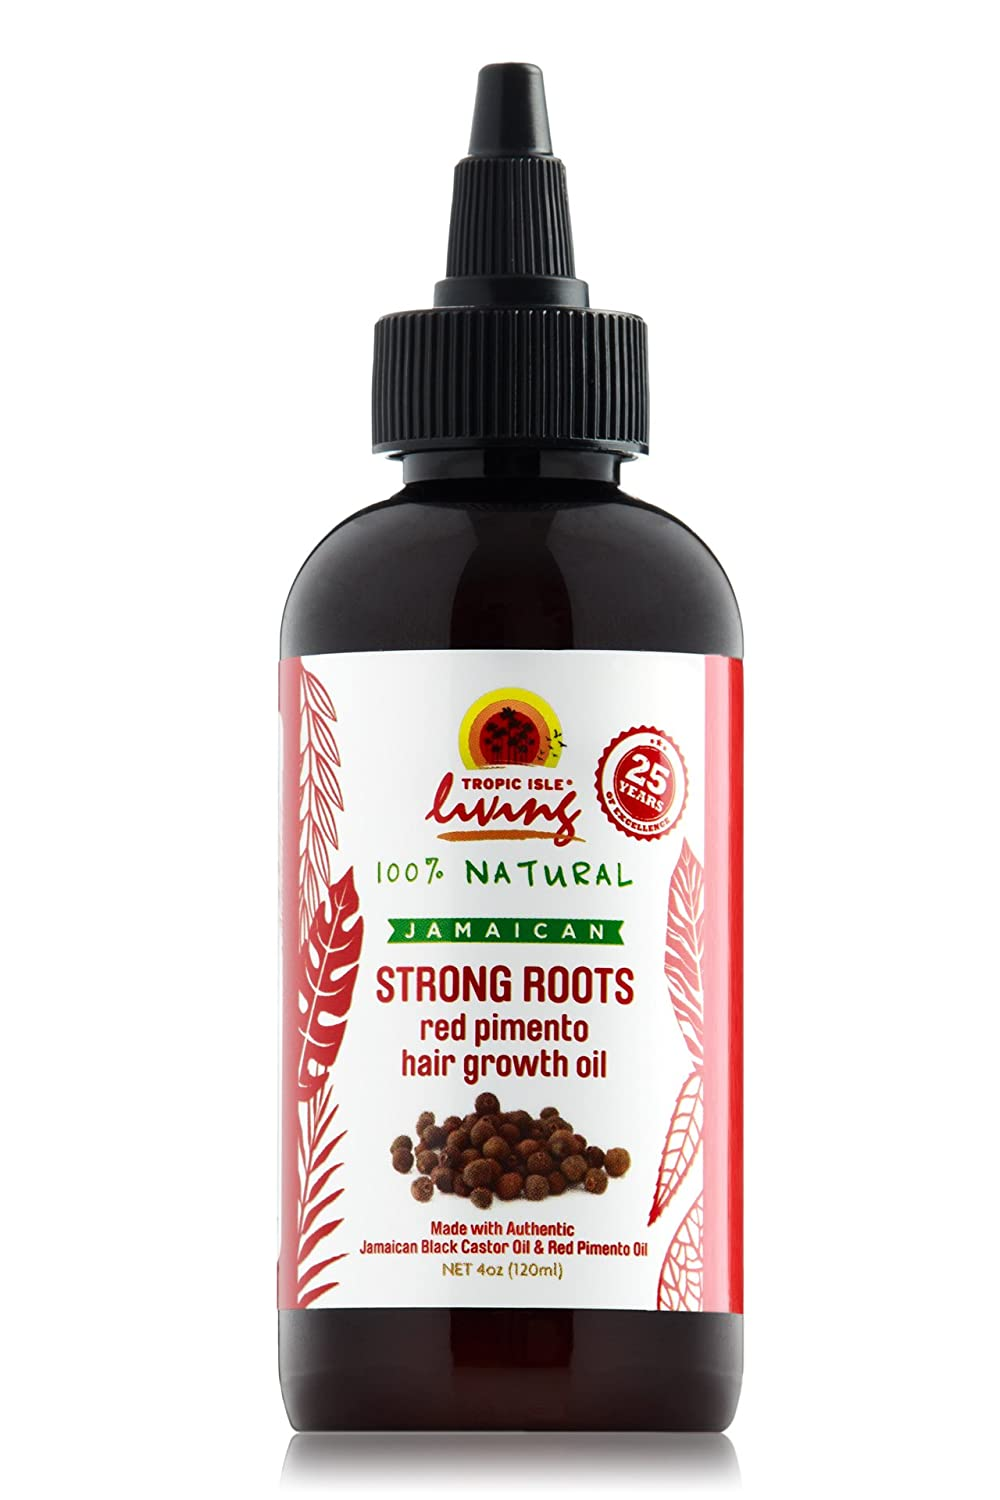 Tropic Isle Living- Strong Roots Red Pimento Hair Growth Oil-4oz TILSRRPHGO4OZFBA001